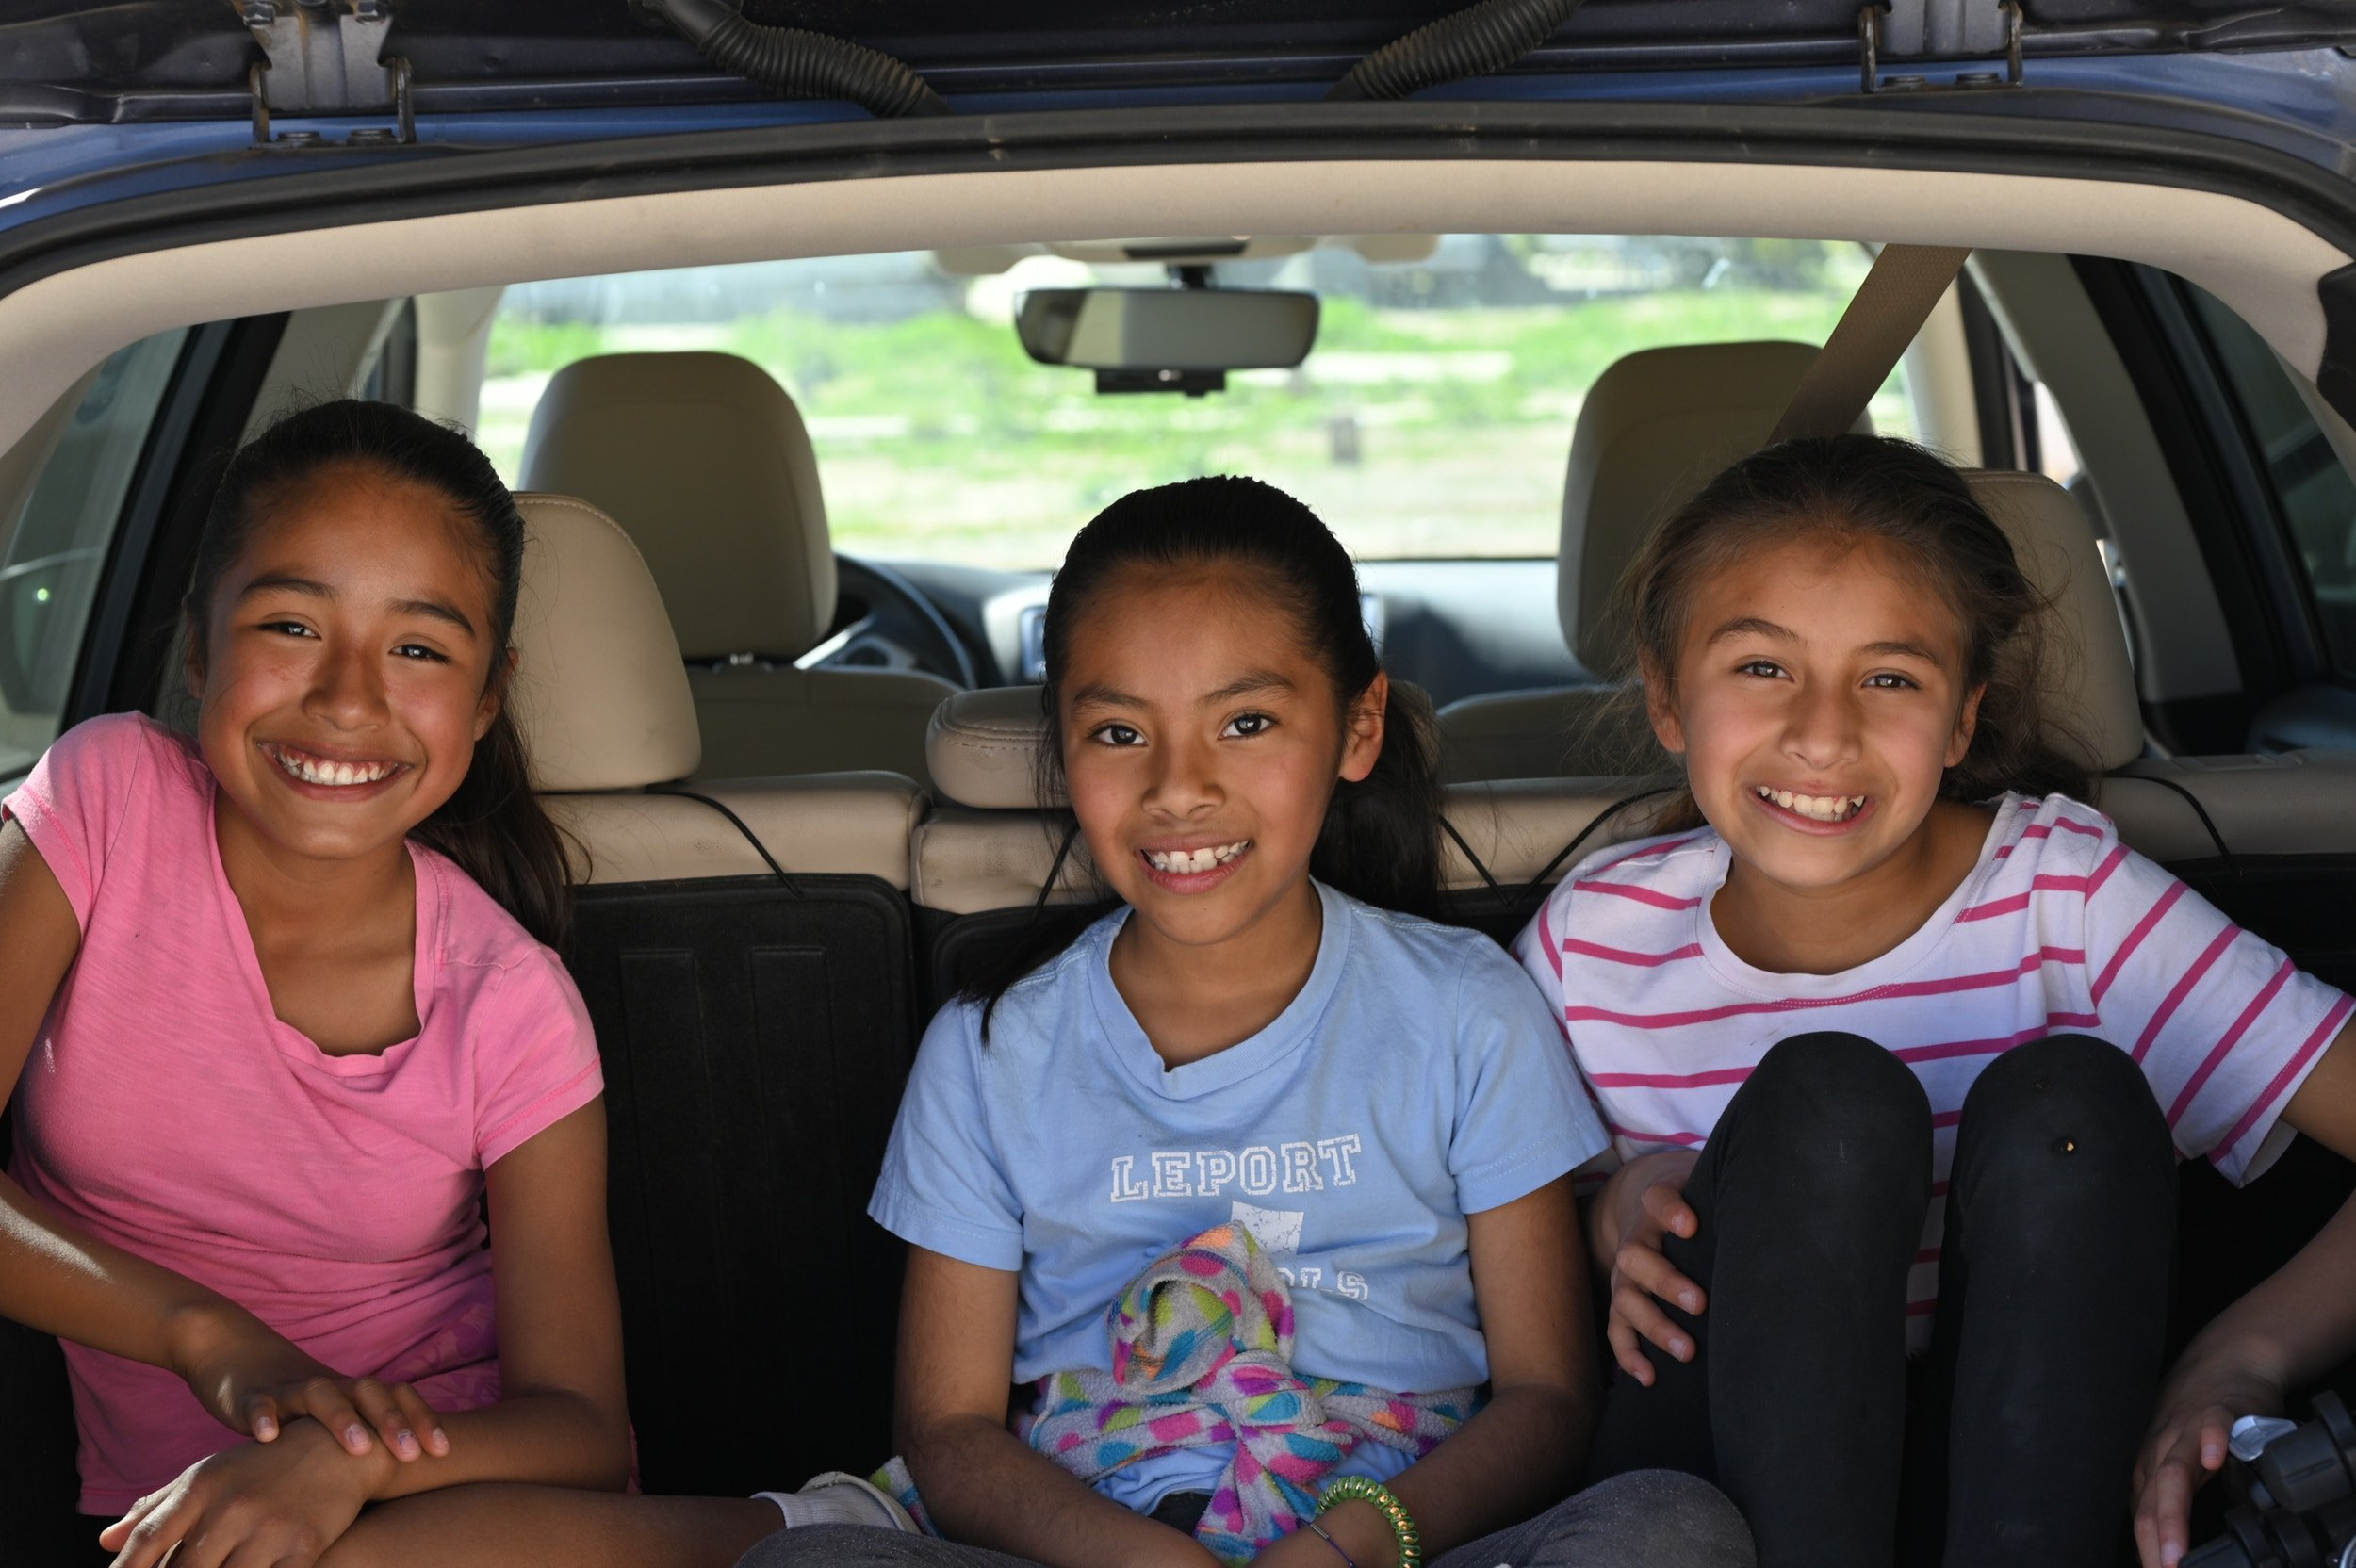 Children smiling and sitting in the back seat of the car